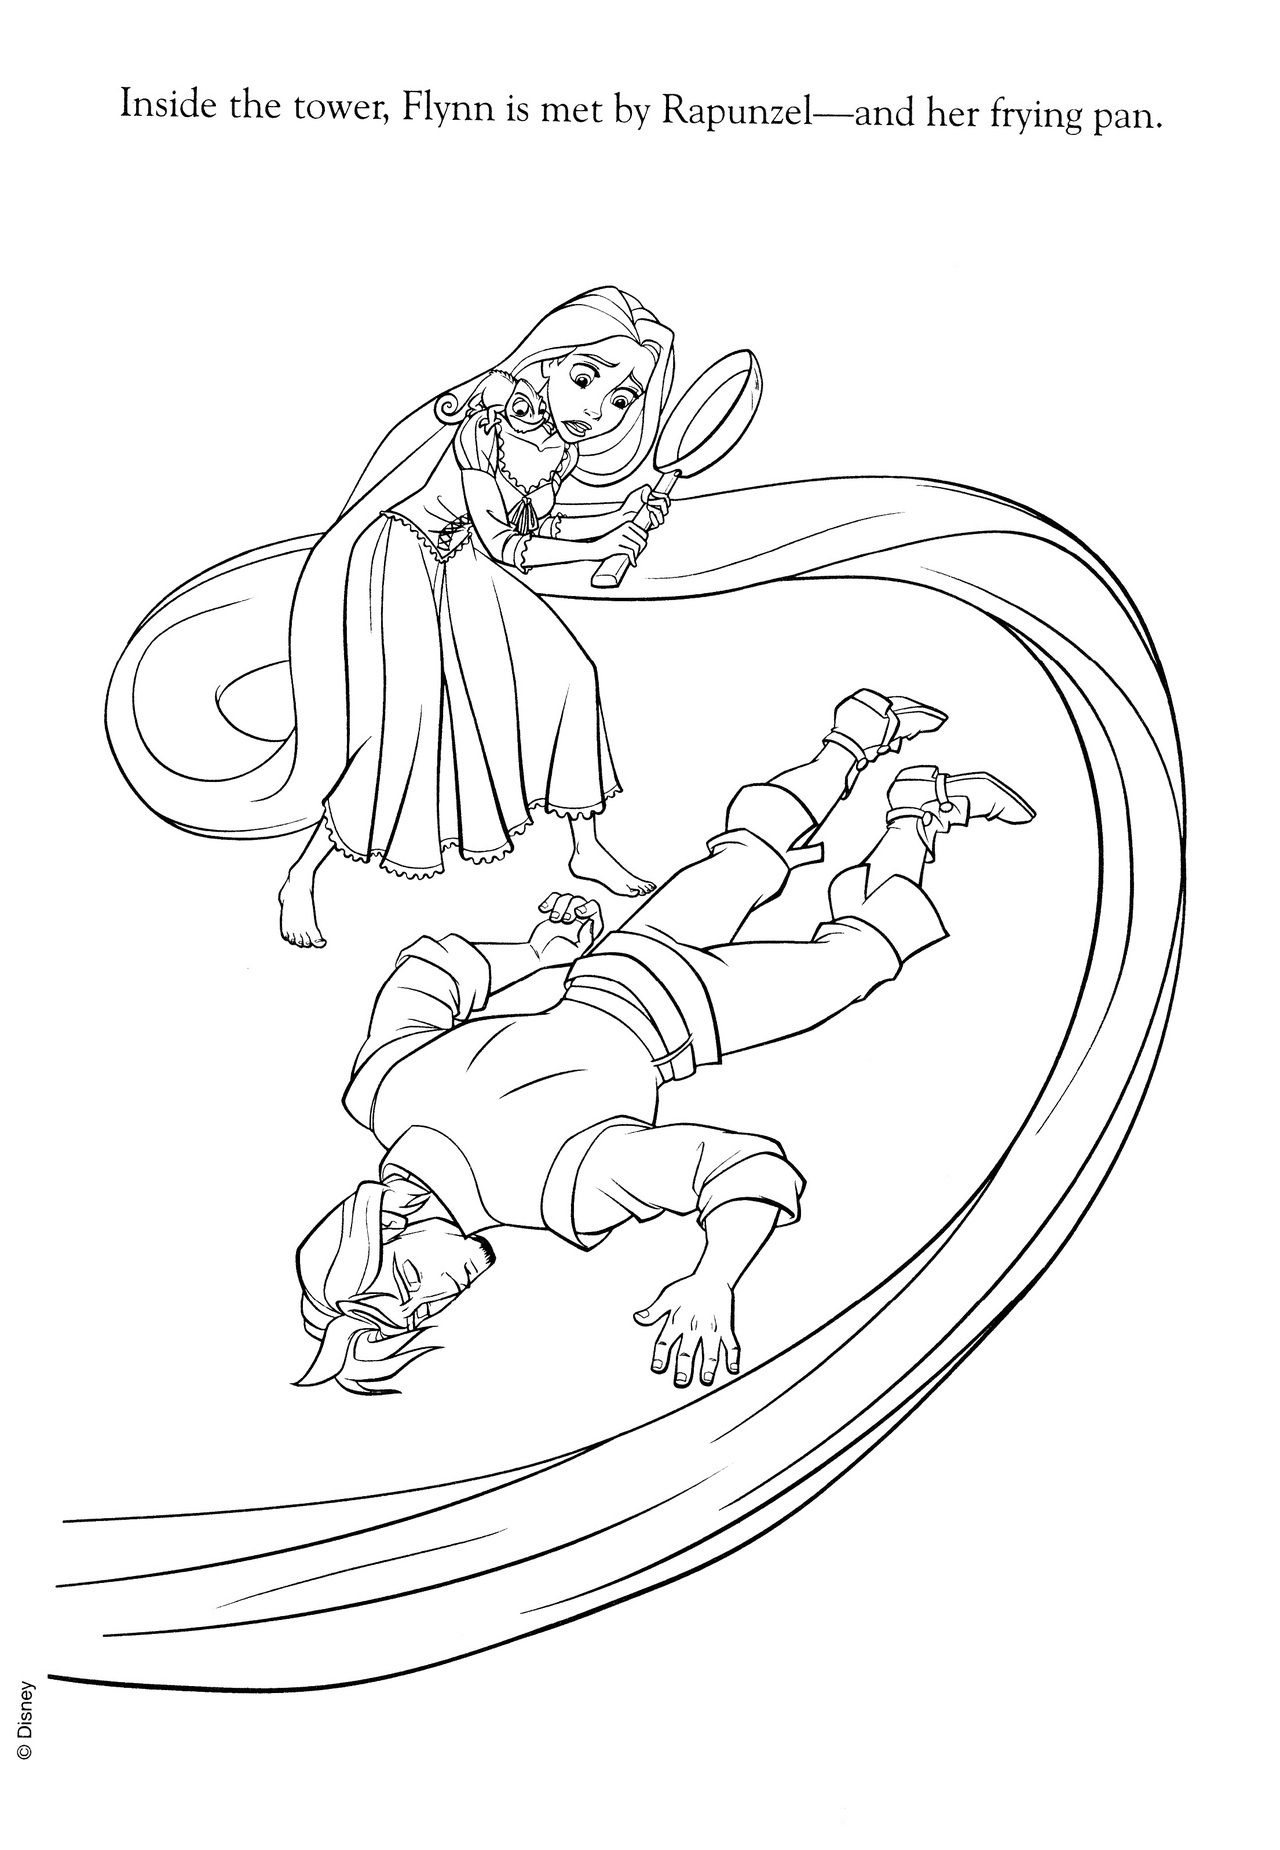 Disney Coloring Pages Tangled Coloring Pages Mermaid Coloring Pages Rapunzel Coloring Pages